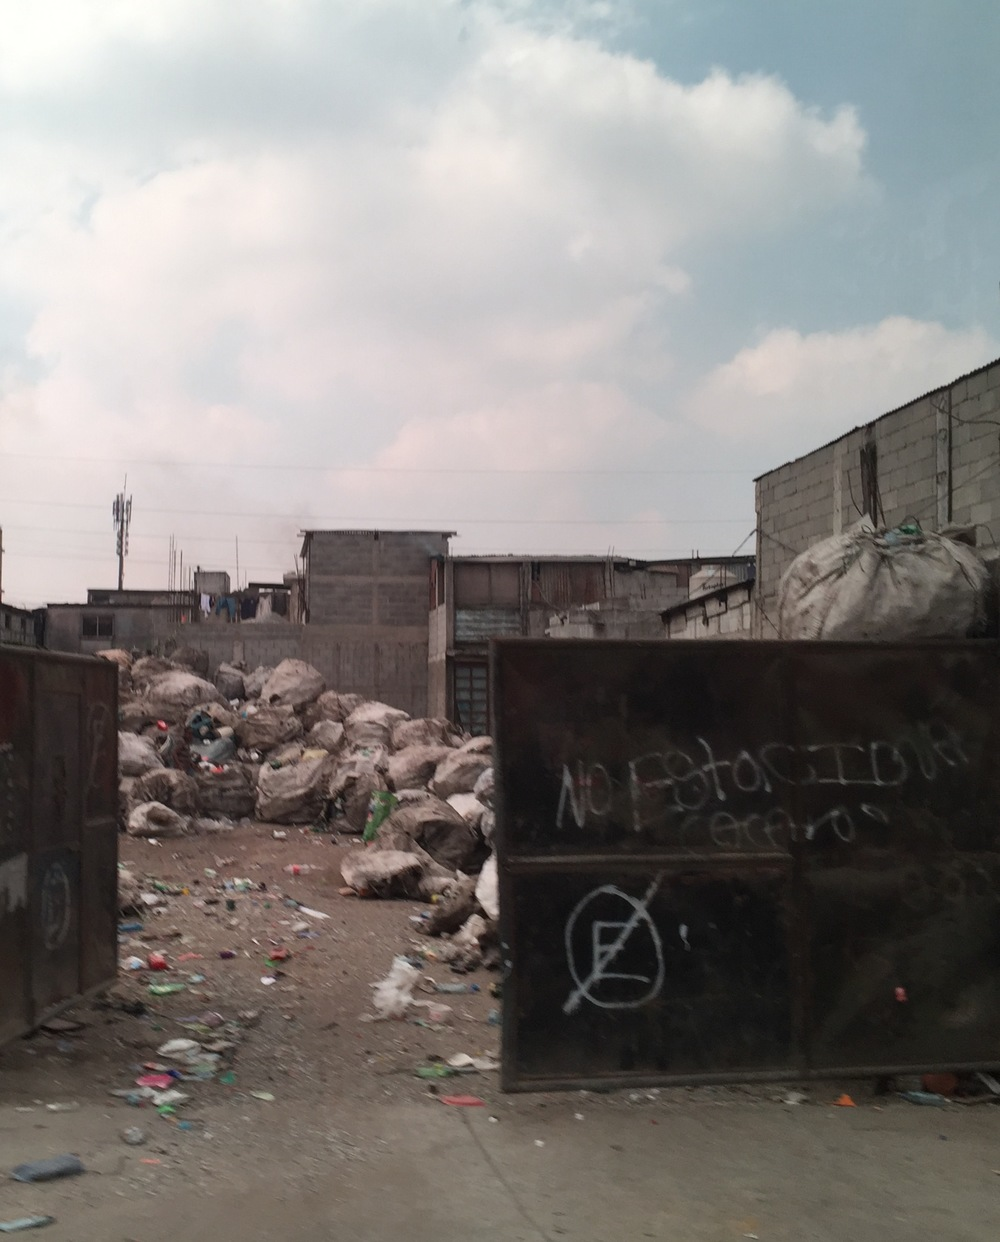 An entrance to the Guatemala City Garbage Dump, where an entire community in the city's infamous Zone 3 scavenges to make a living.